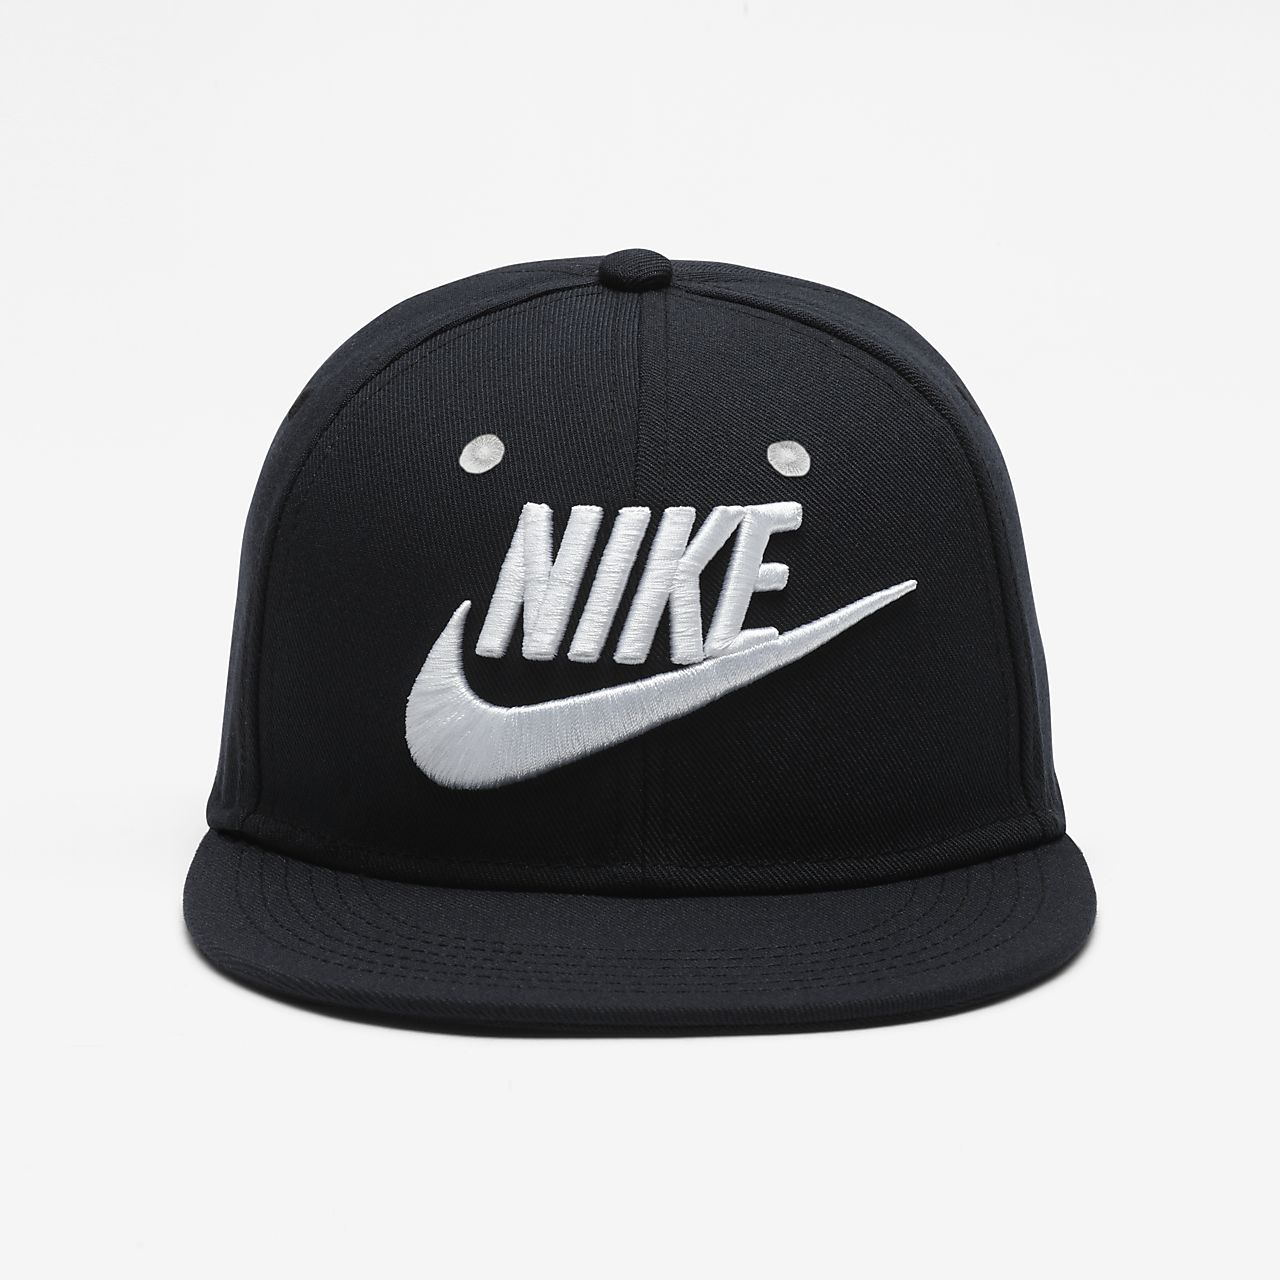 ecd6cd4d1d9 Nike Futura True Older Kids  Adjustable Hat. Nike.com GB